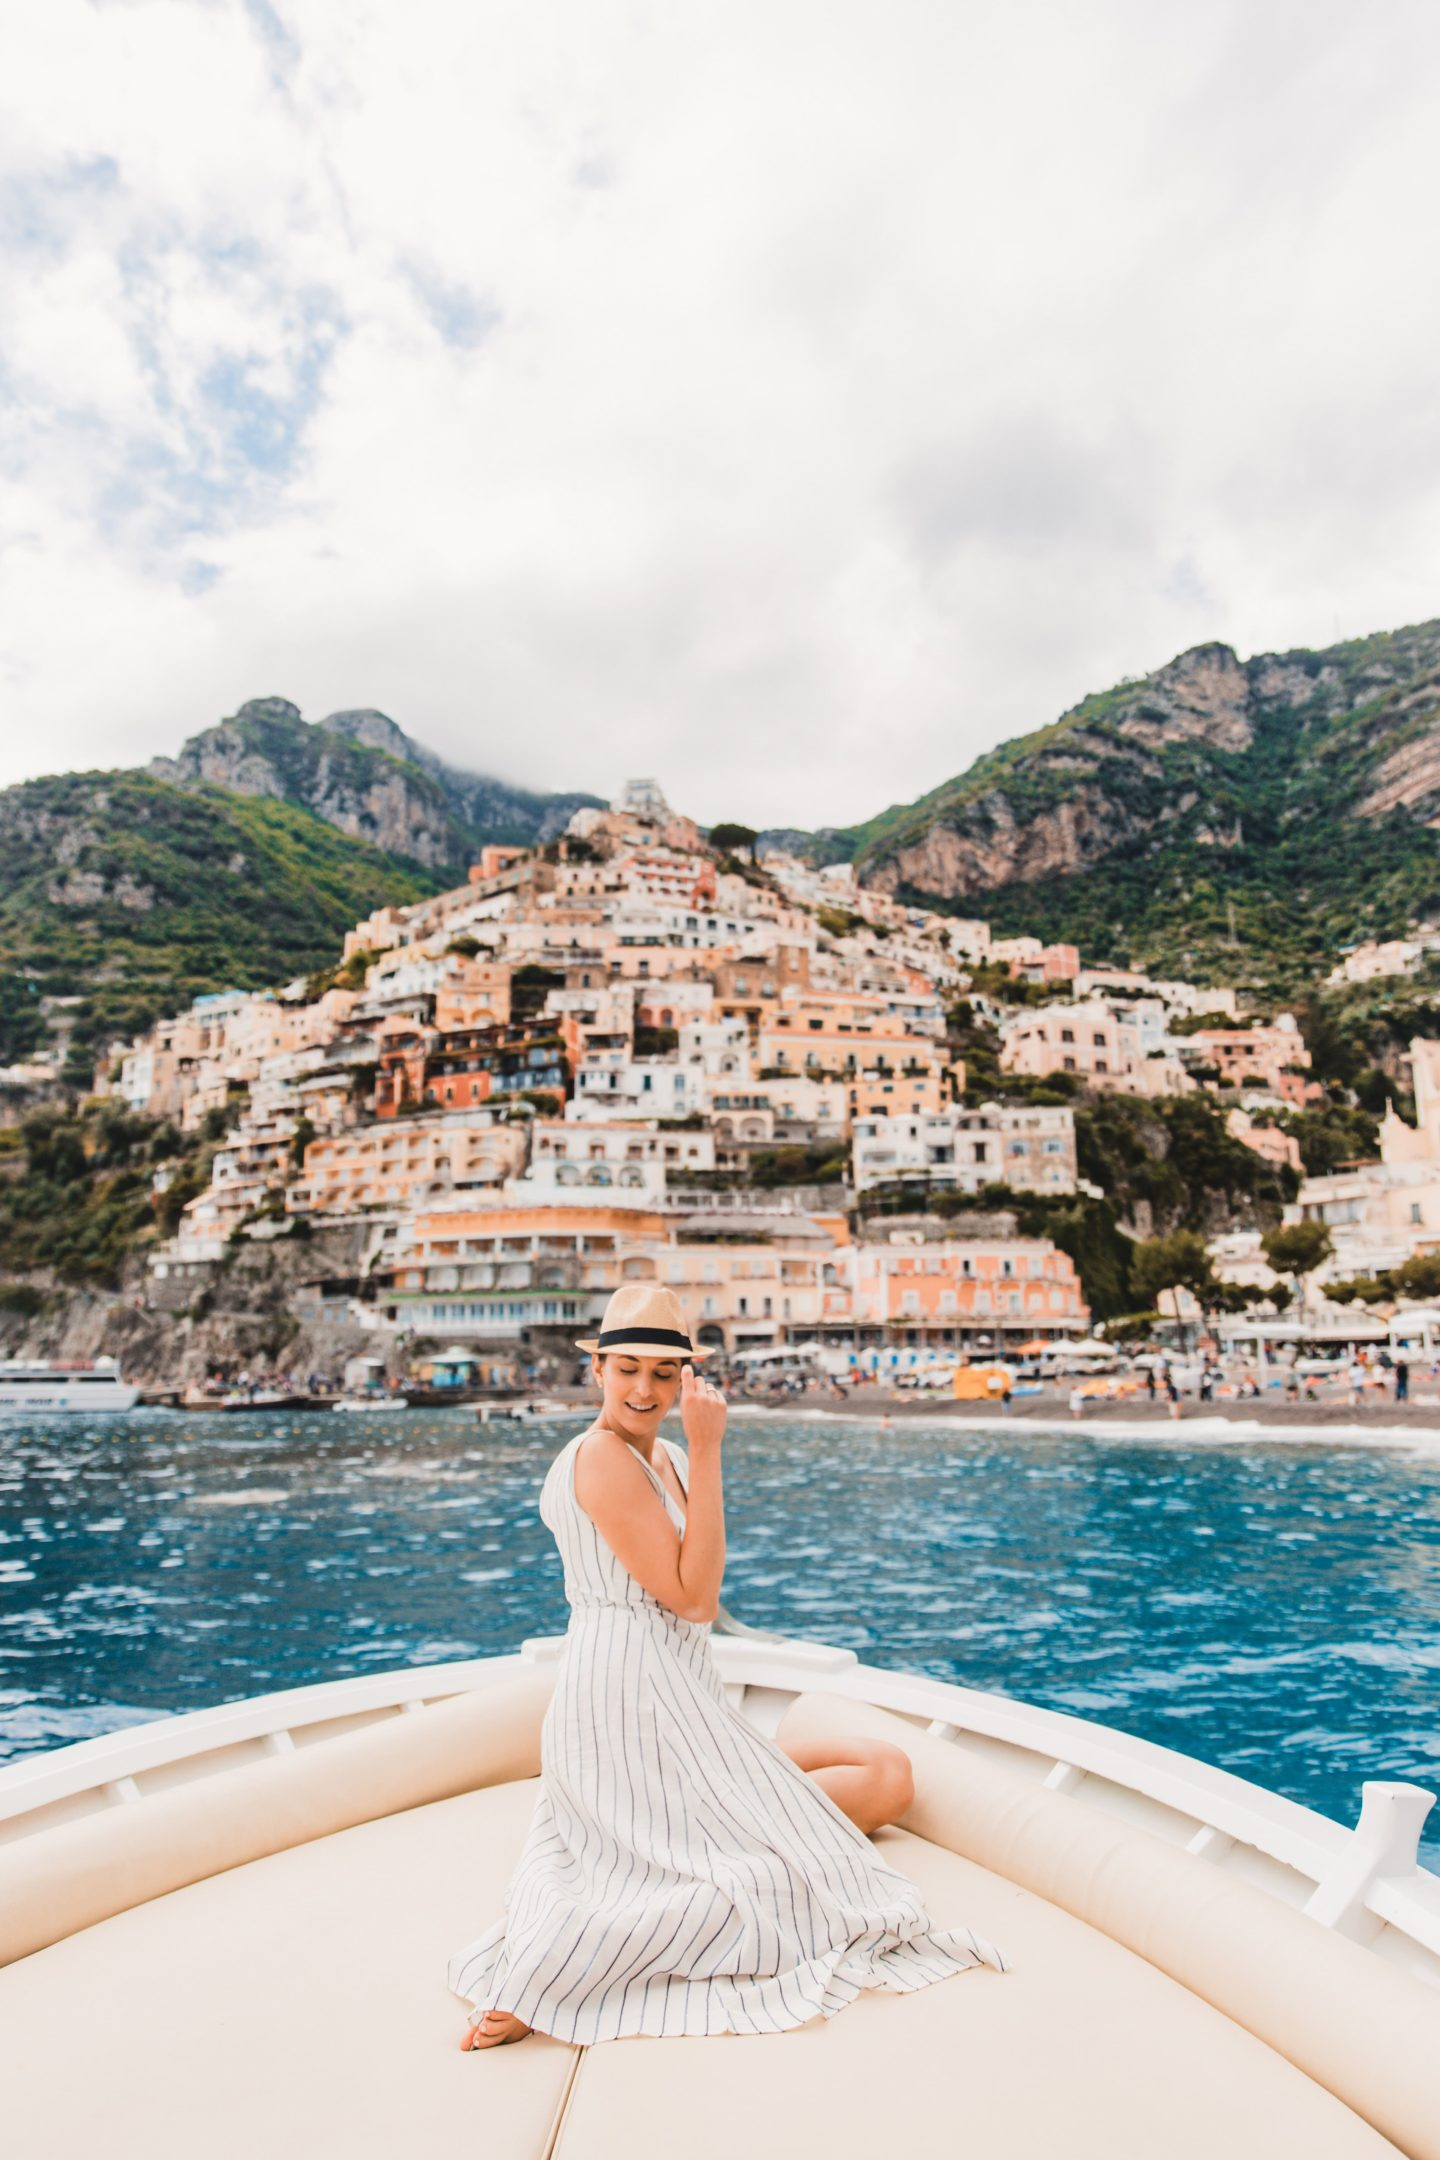 Unforgettable Experience Sailing Along the Amalfi Coast Italy | Positano Summer Travel Day Trip